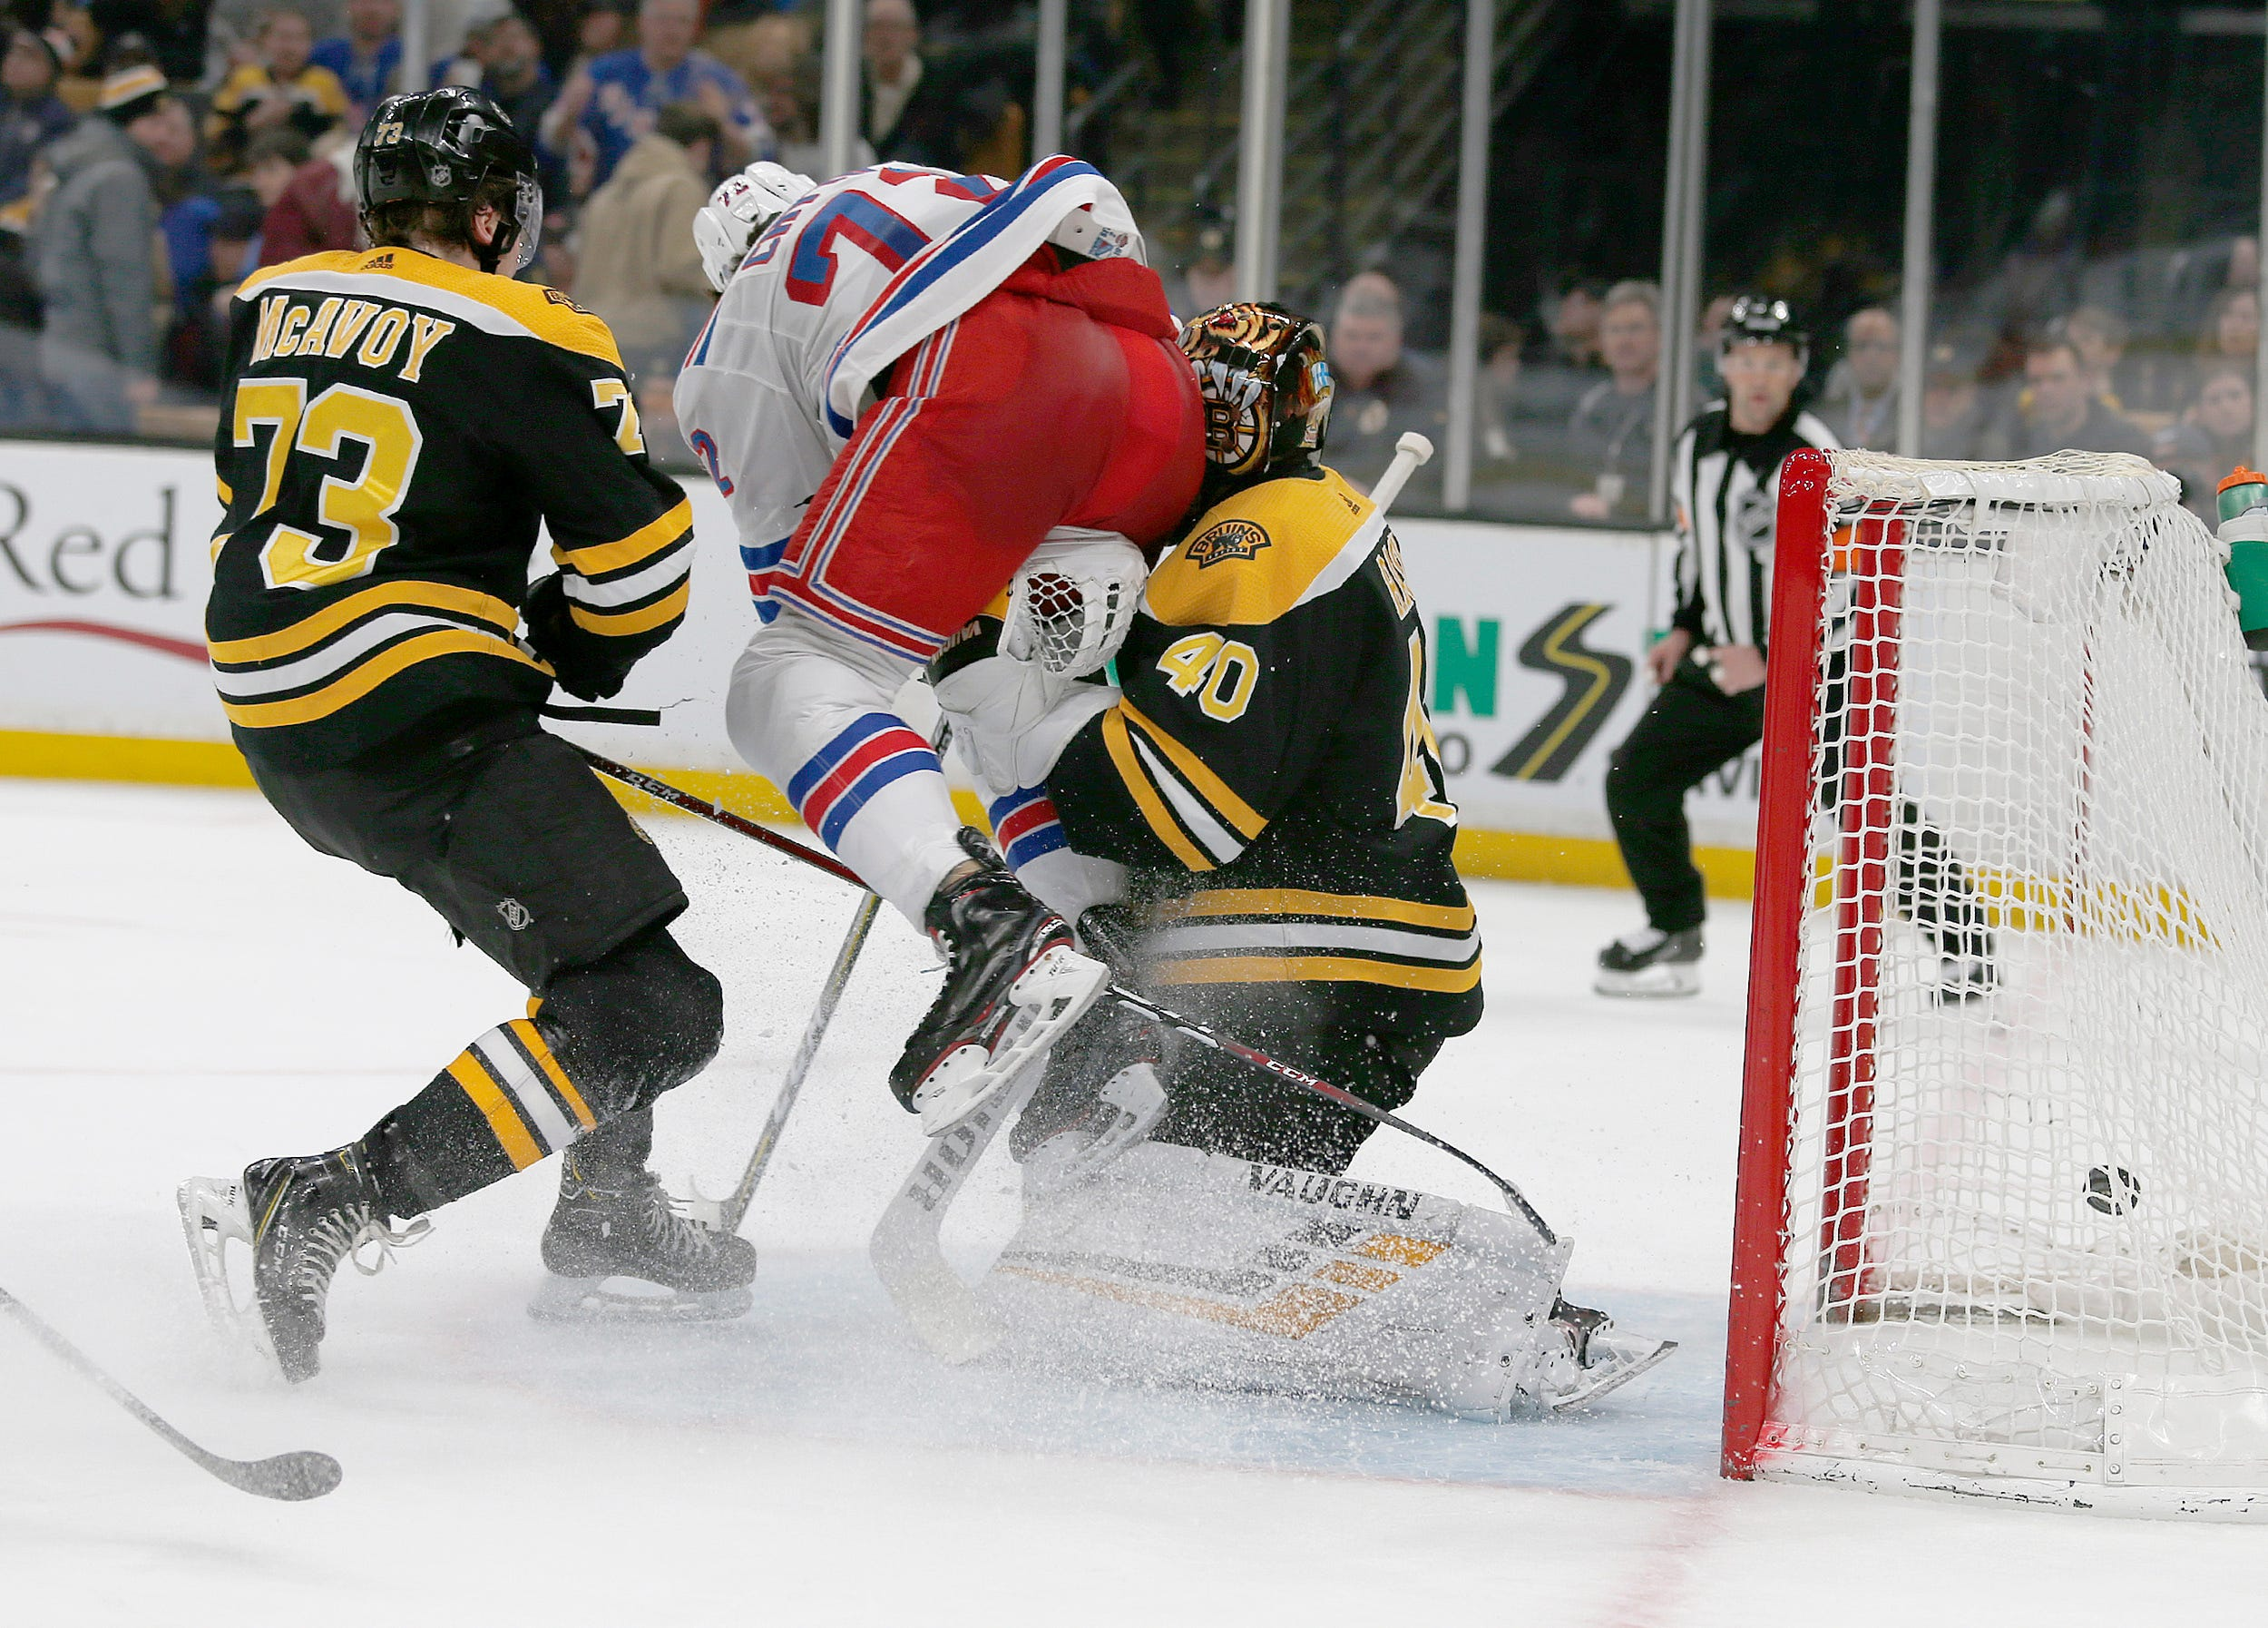 Bruins goalie Tuukka Rask suffers concussion in nasty collision with Rangers' Filip Chytil